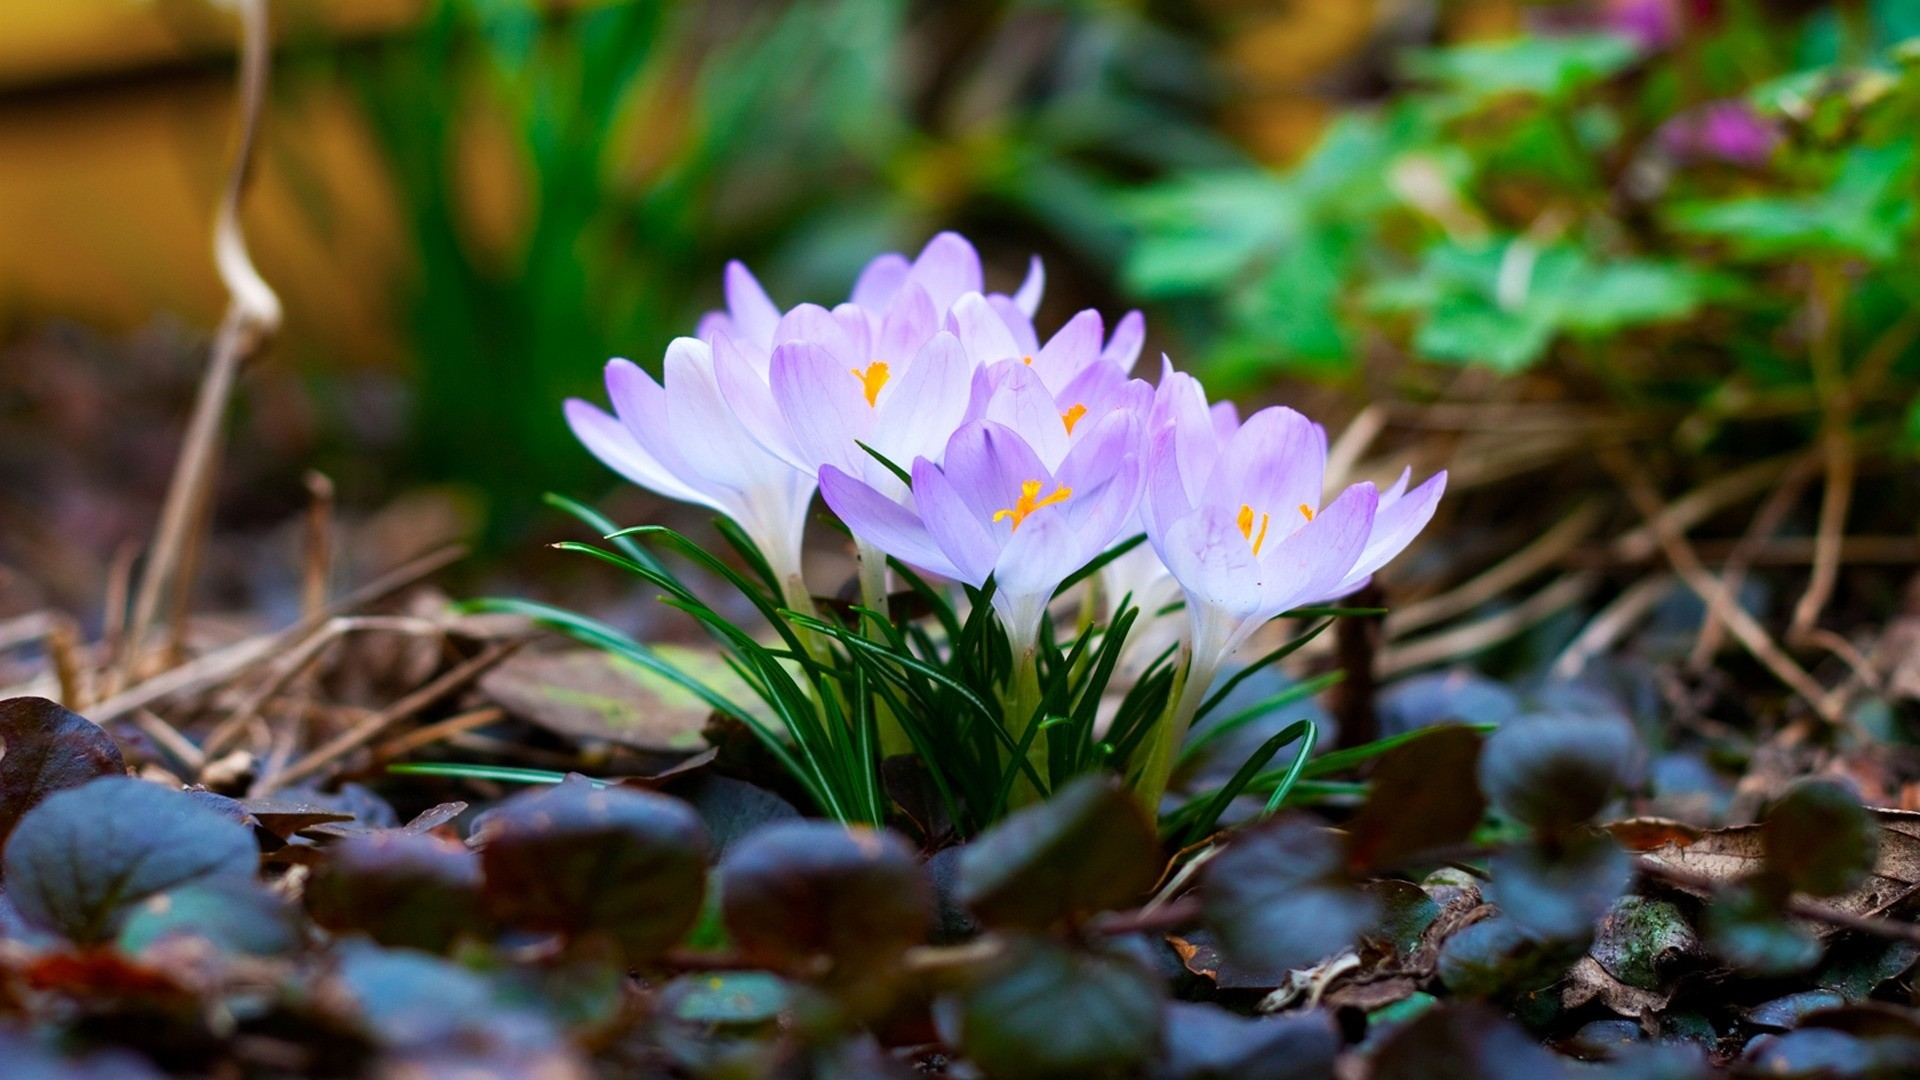 Res: 1920x1080, Spring Widescreen Wallpaper Hd Images Flowers For Desktop Pc